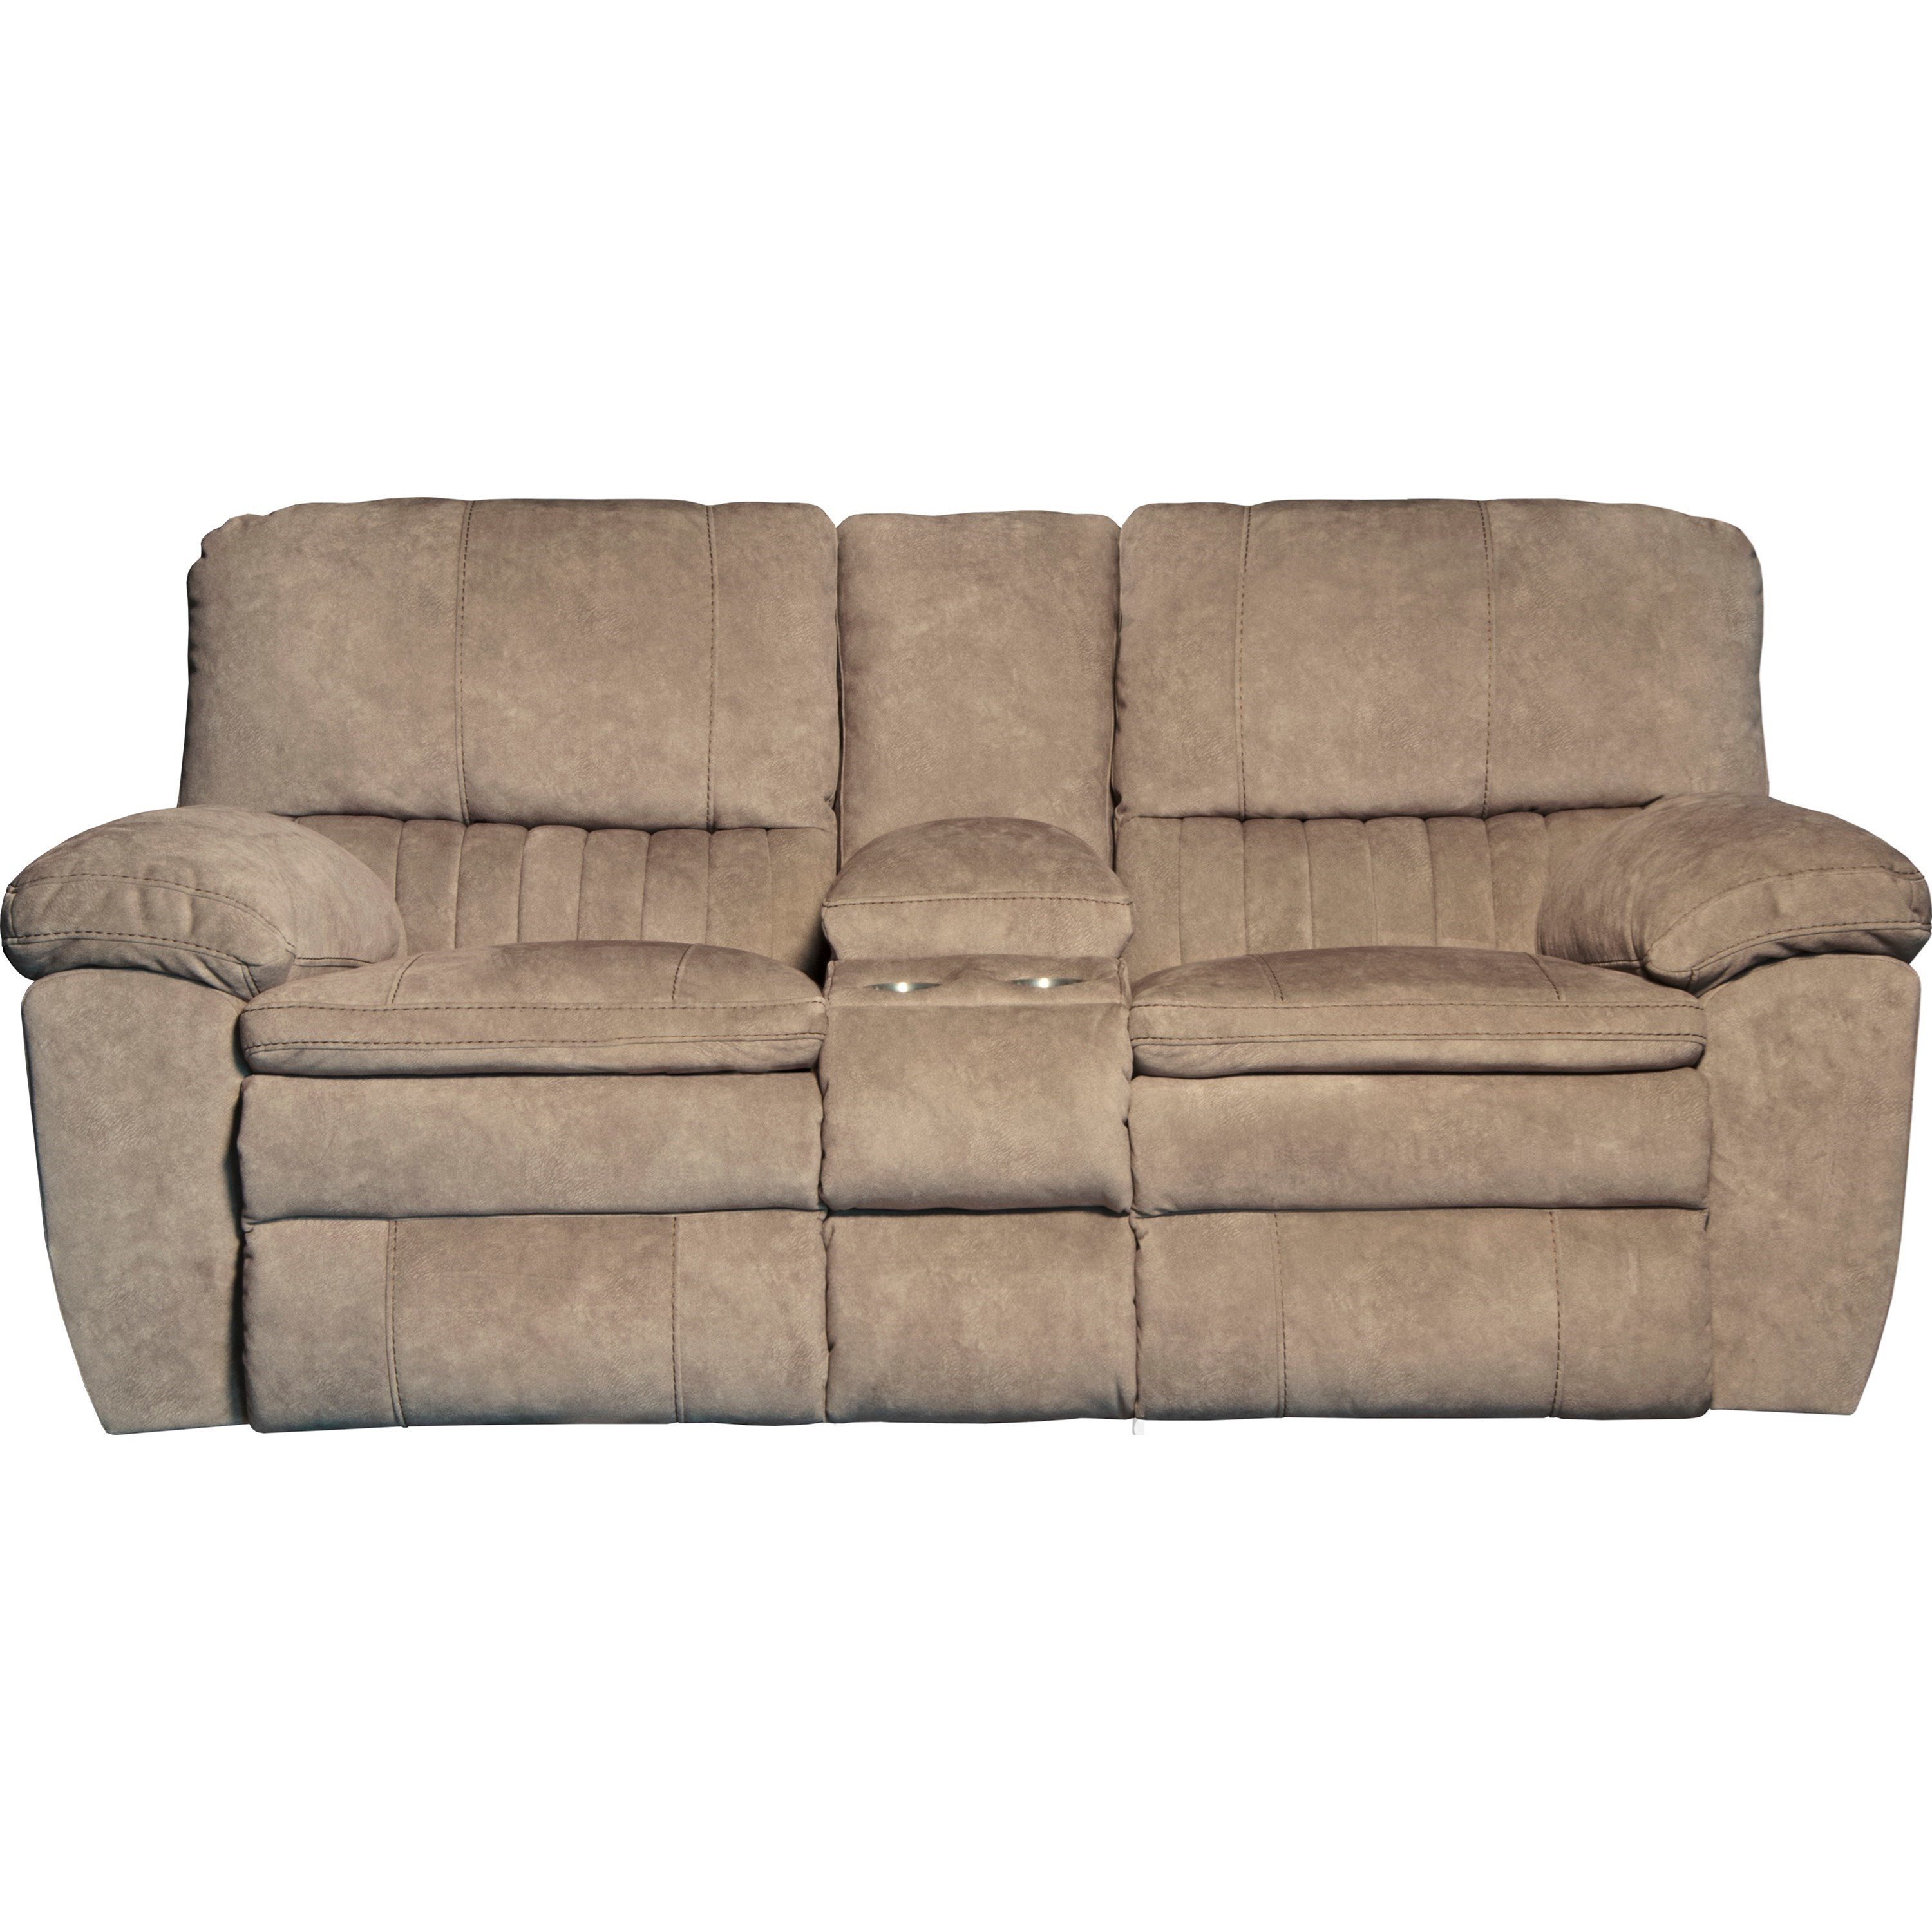 Reyes Lay Flat Reclining Console Loveseat by Catnapper at Lindy's Furniture Company